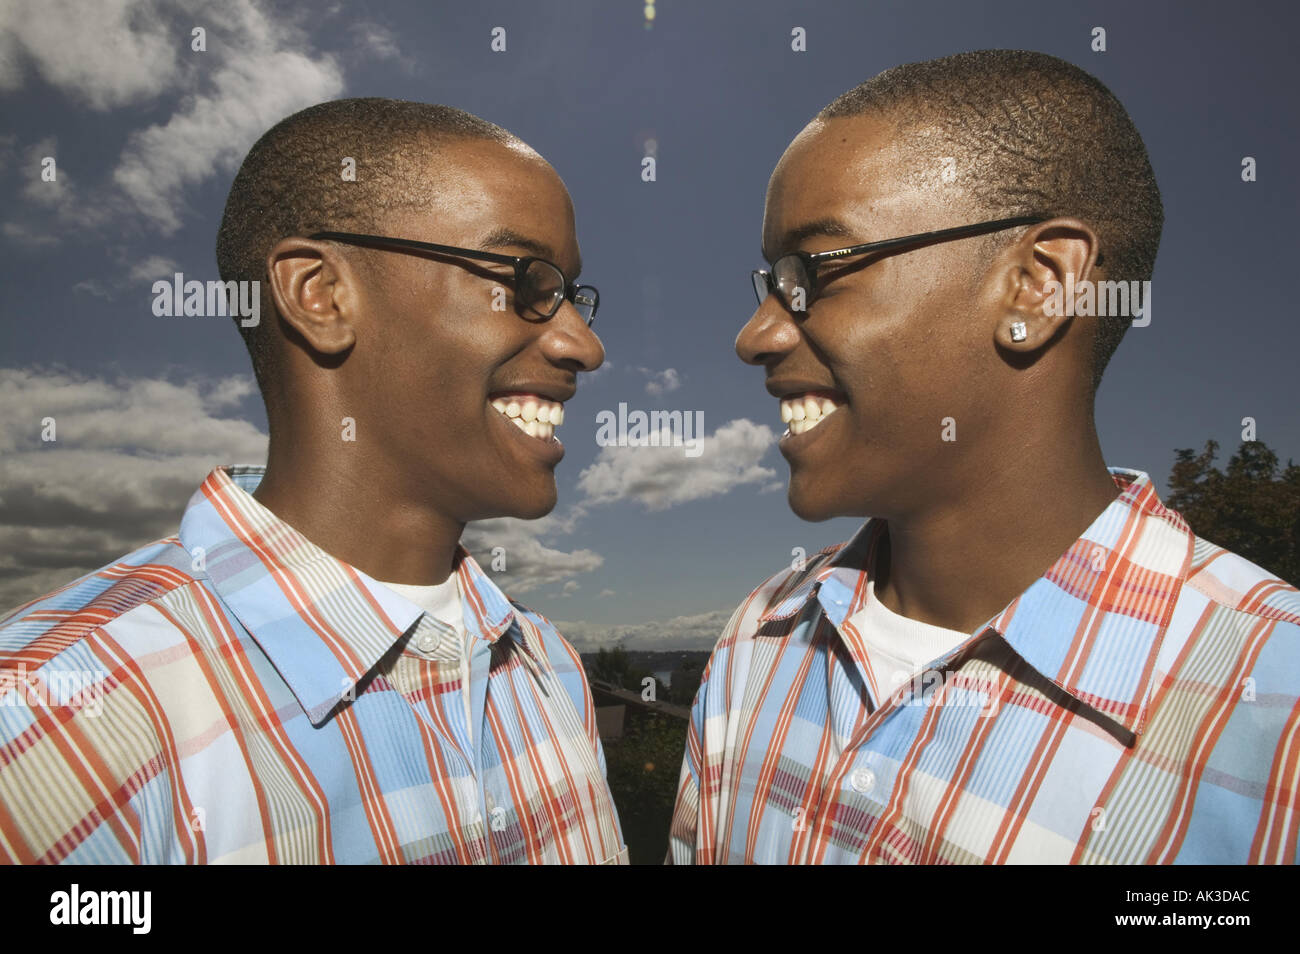 Outdoors portrait of twin african american teenage boys in glasses and matching plaid shirts